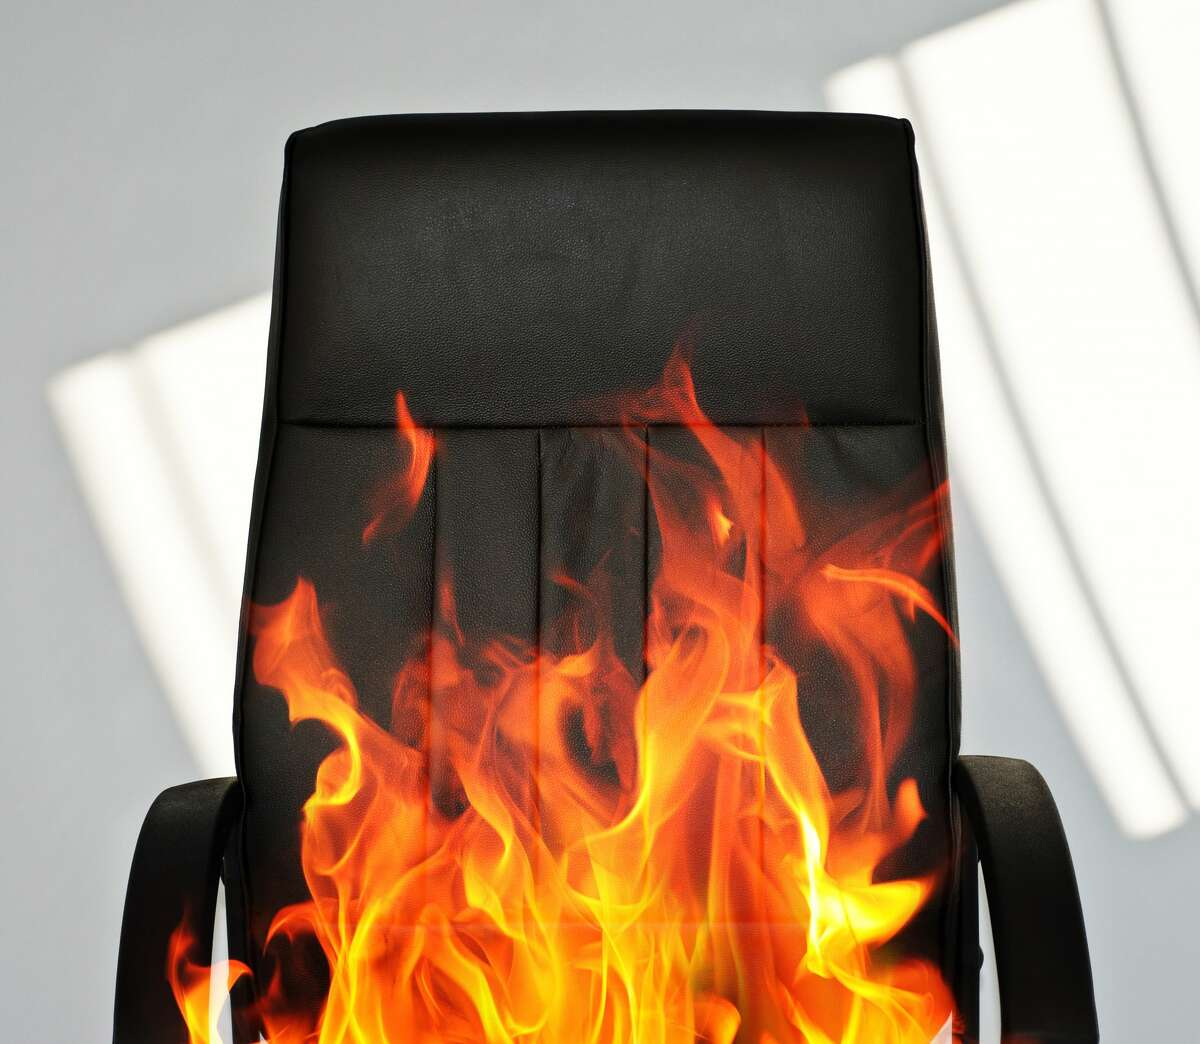 Conceptual photo of a black office chair on fire.